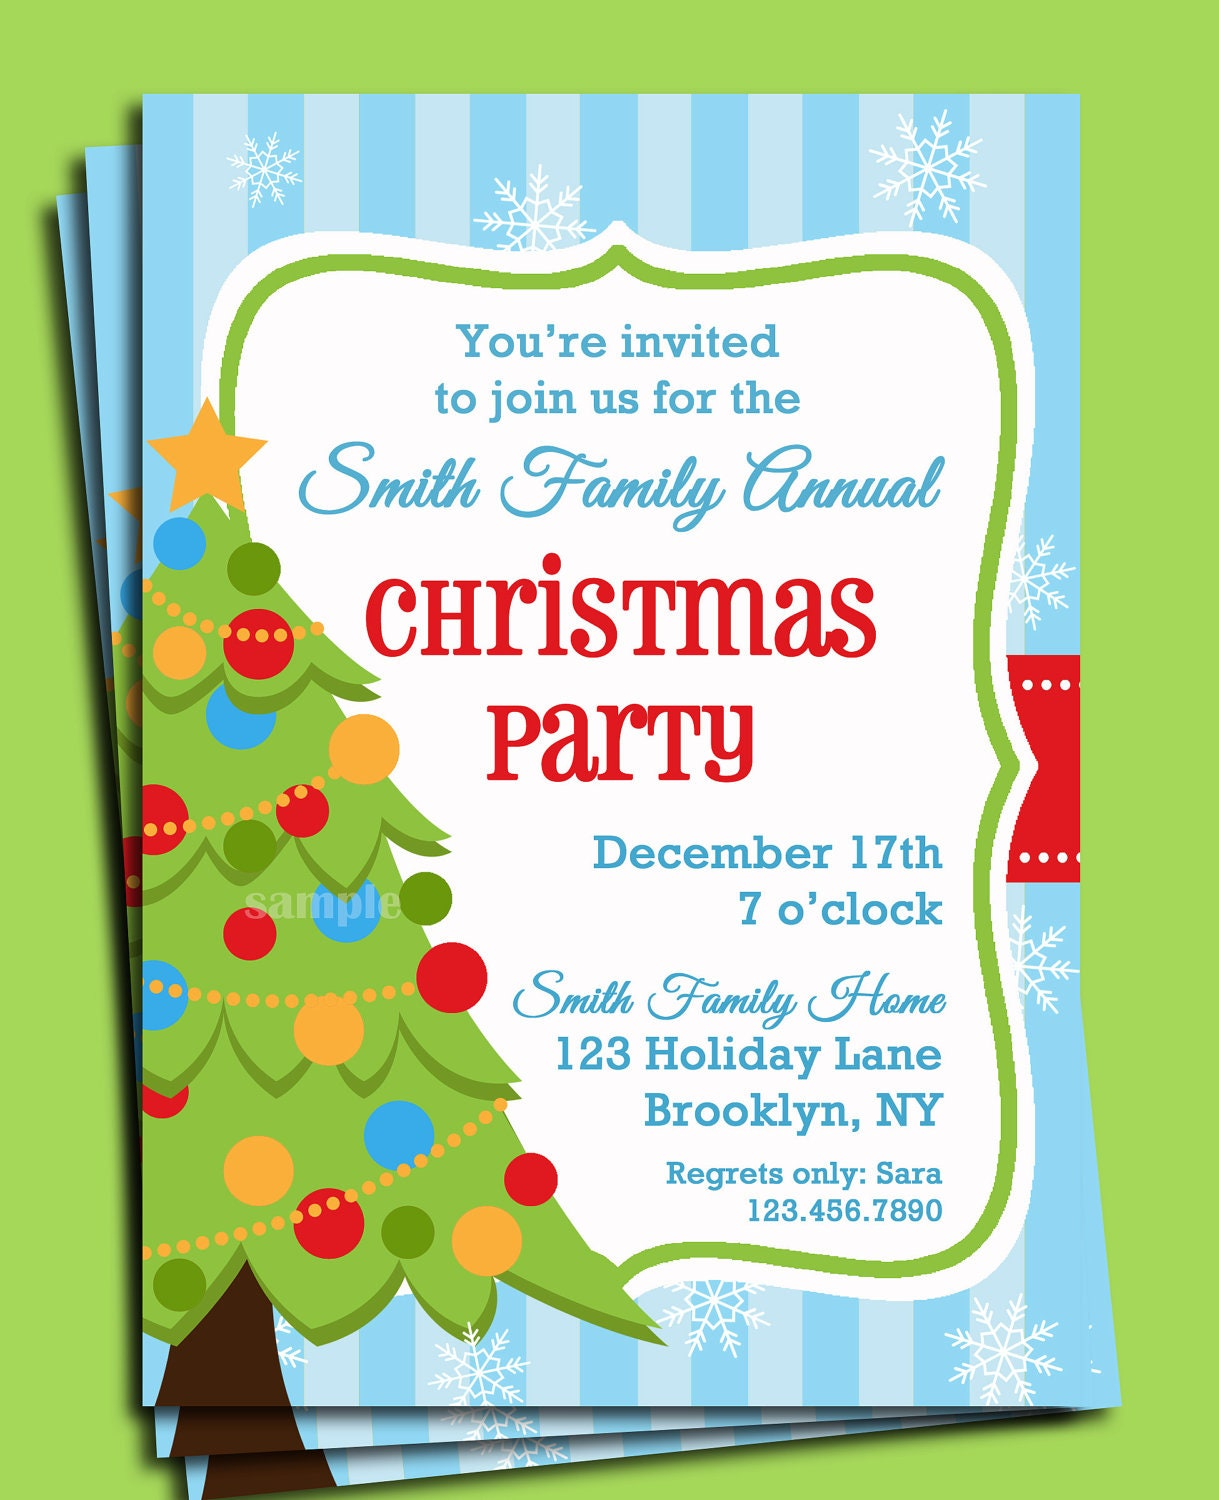 Christmas Party Invitations Wording correctly perfect ideas for your invitation layout